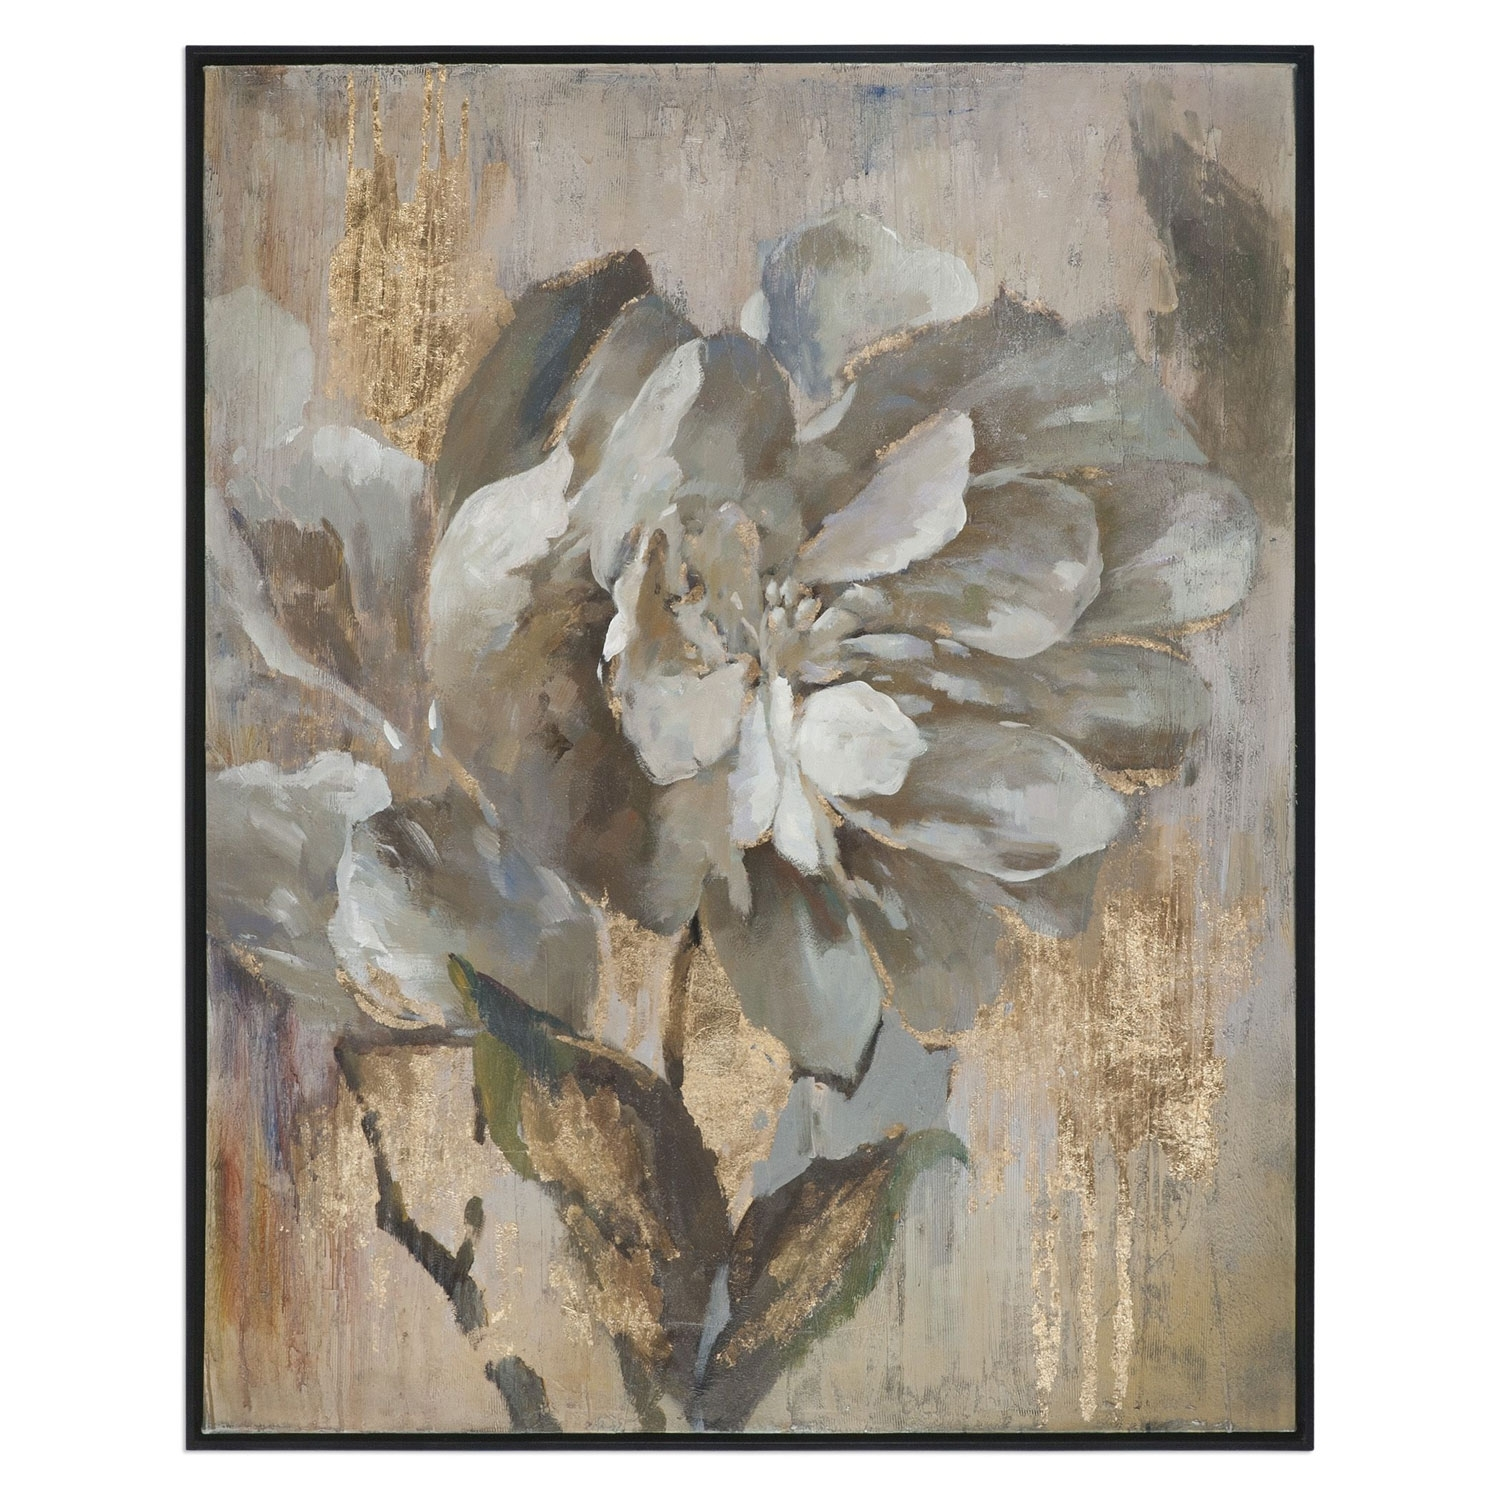 Uttermost Dazzlinggrace Feyock: 41 X 51 Inch Wall Art 35330 Pertaining To 2017 Uttermost Wall Art (View 1 of 20)